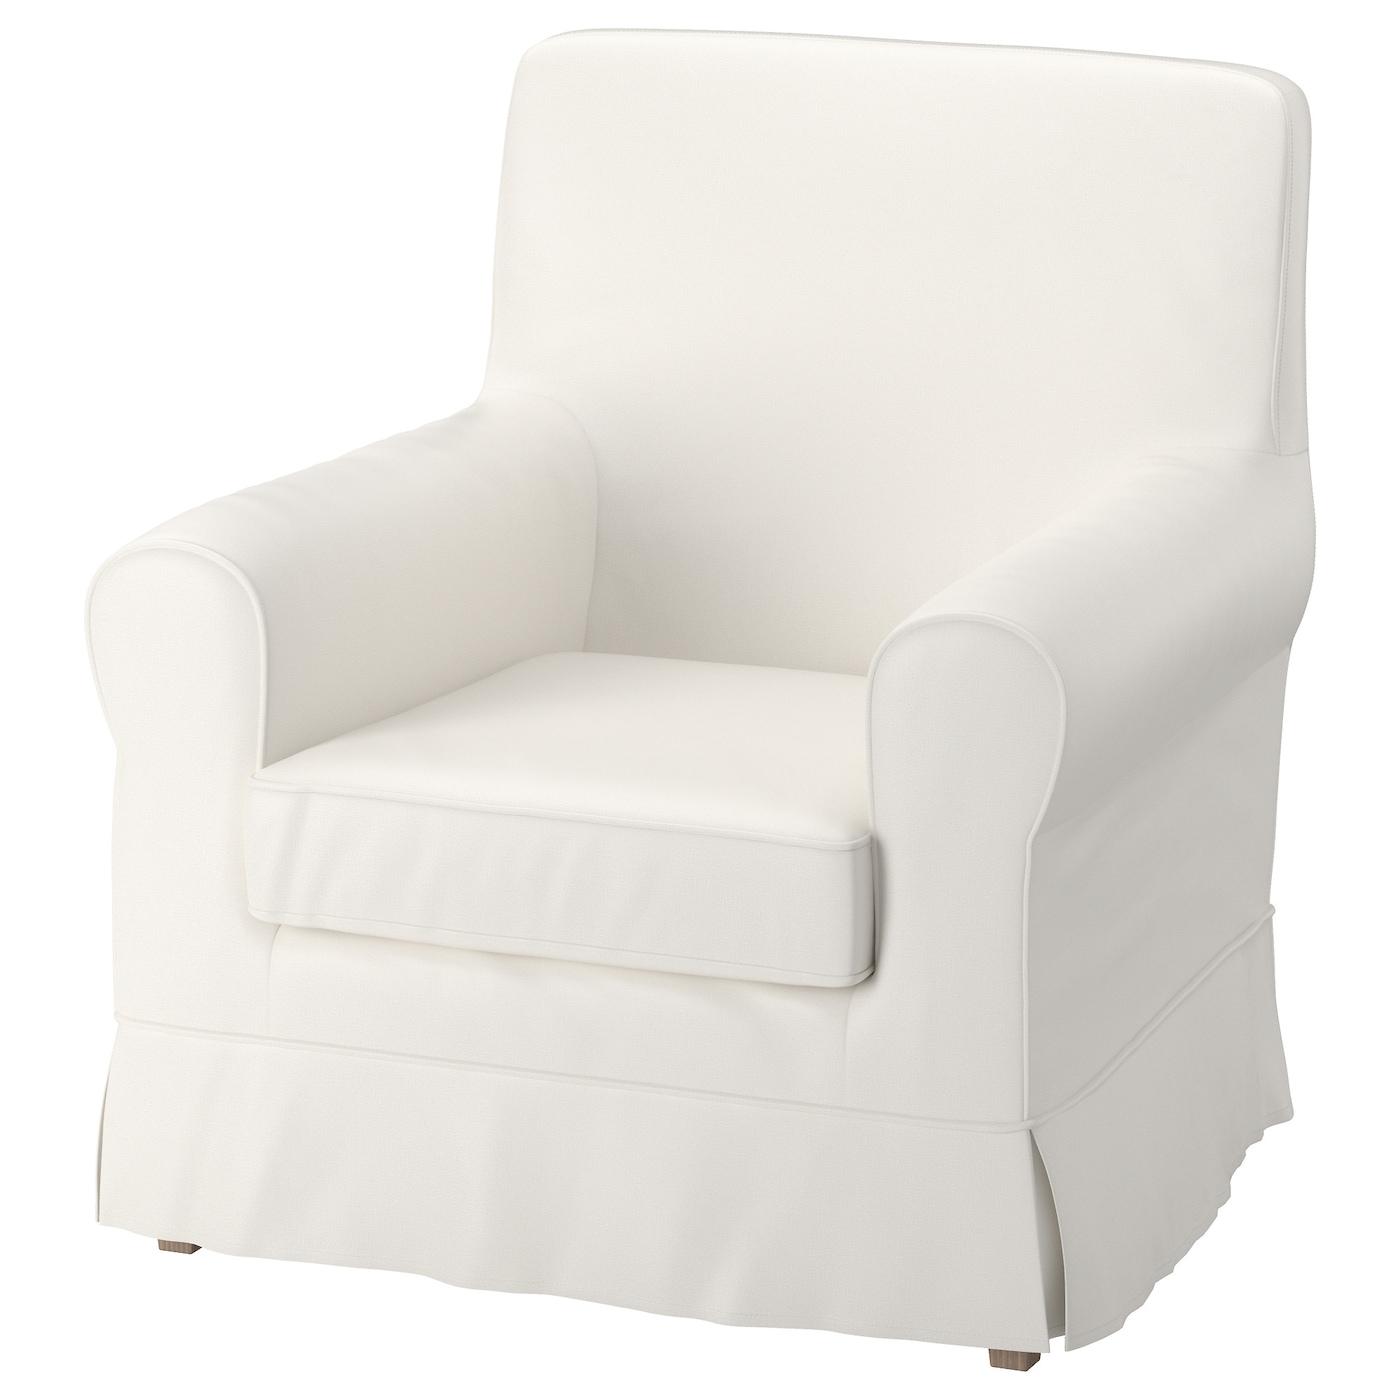 jennylund fauteuil sten sa blanc ikea. Black Bedroom Furniture Sets. Home Design Ideas